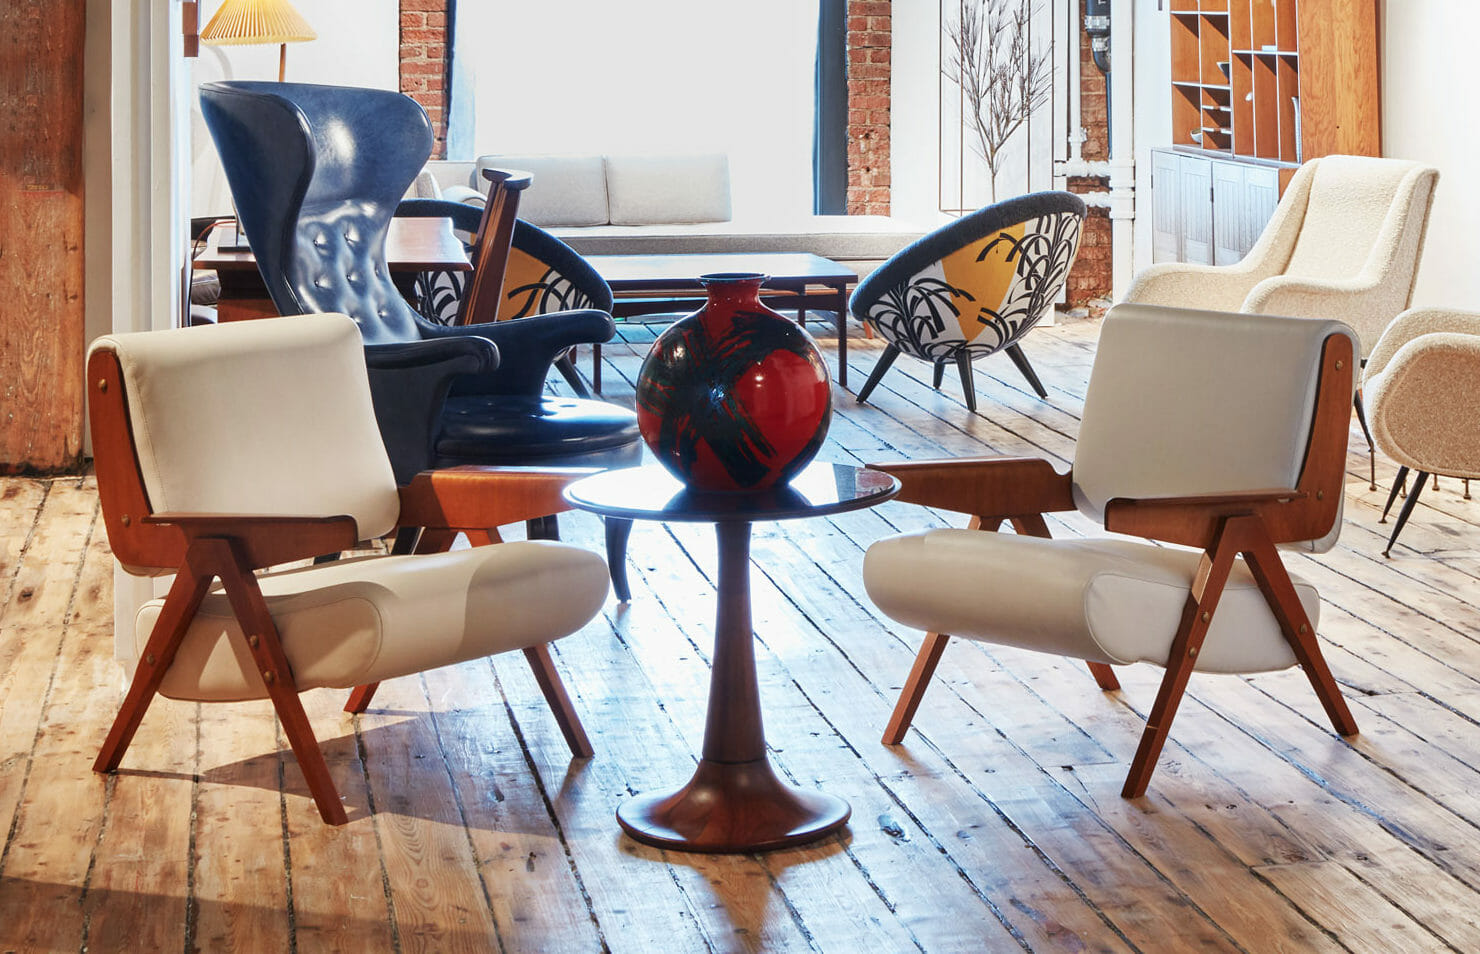 nyc furniture store - 1st dibs